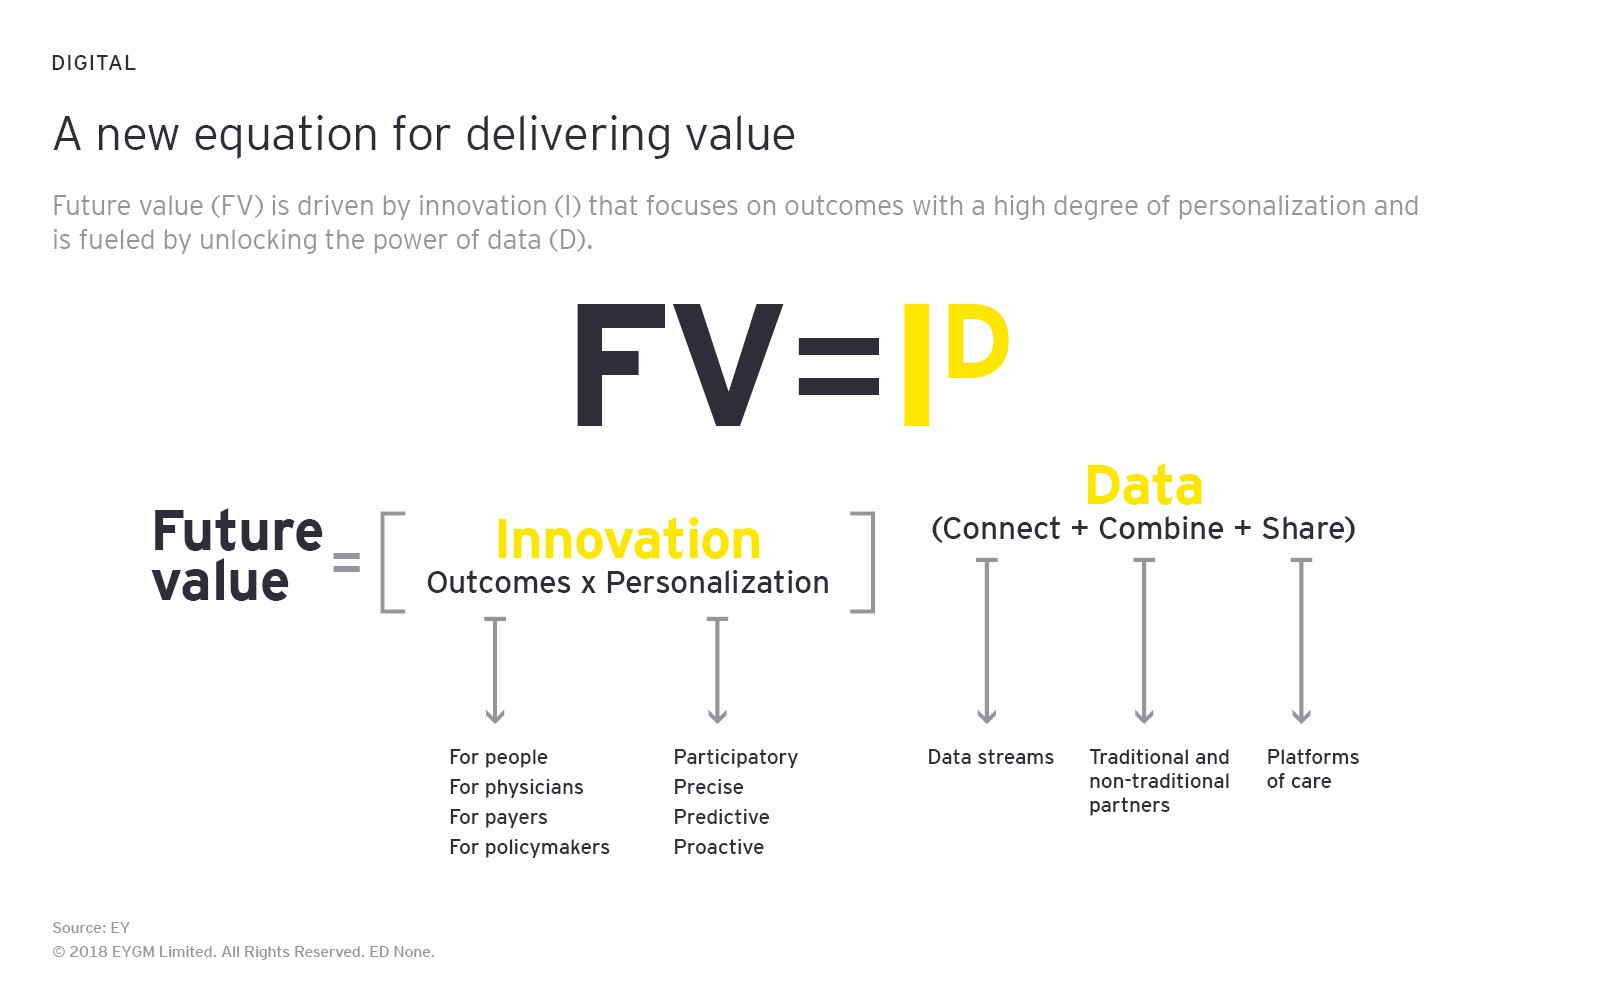 A new equation for delivering value